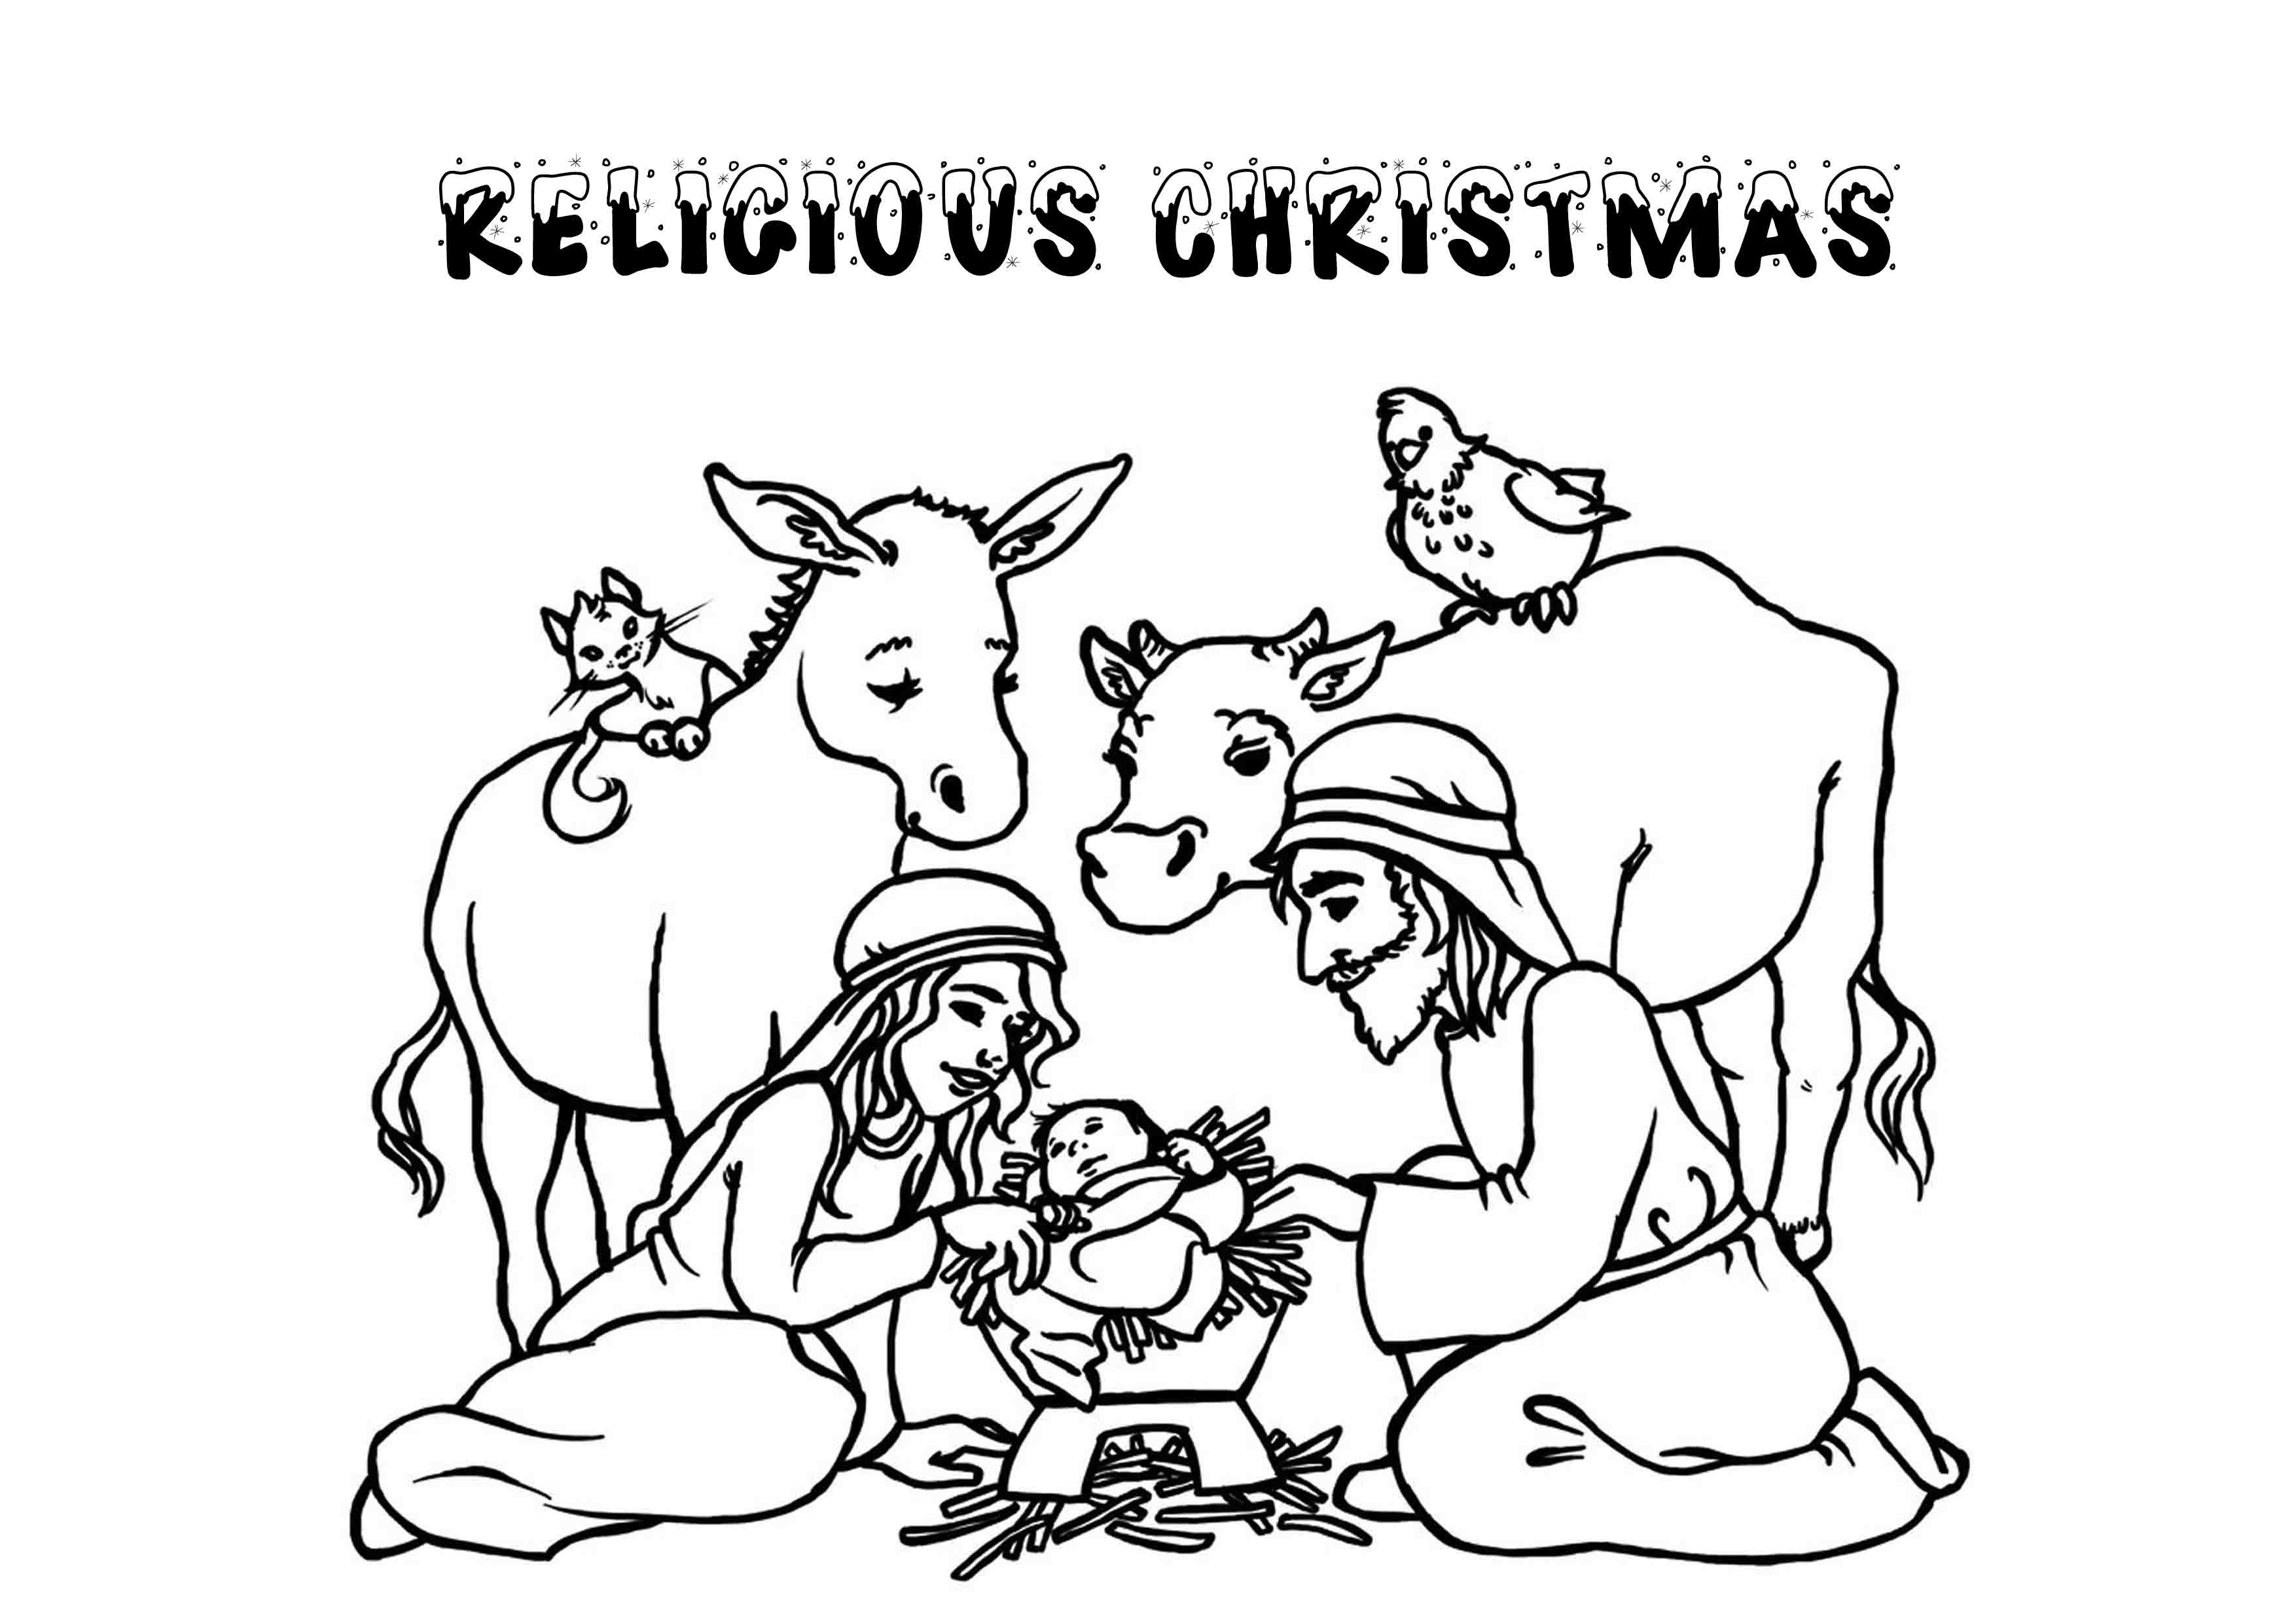 Christmas Religious Coloring Pages For Kids  Christmas Religious Printable Coloring Pages Coloring Home